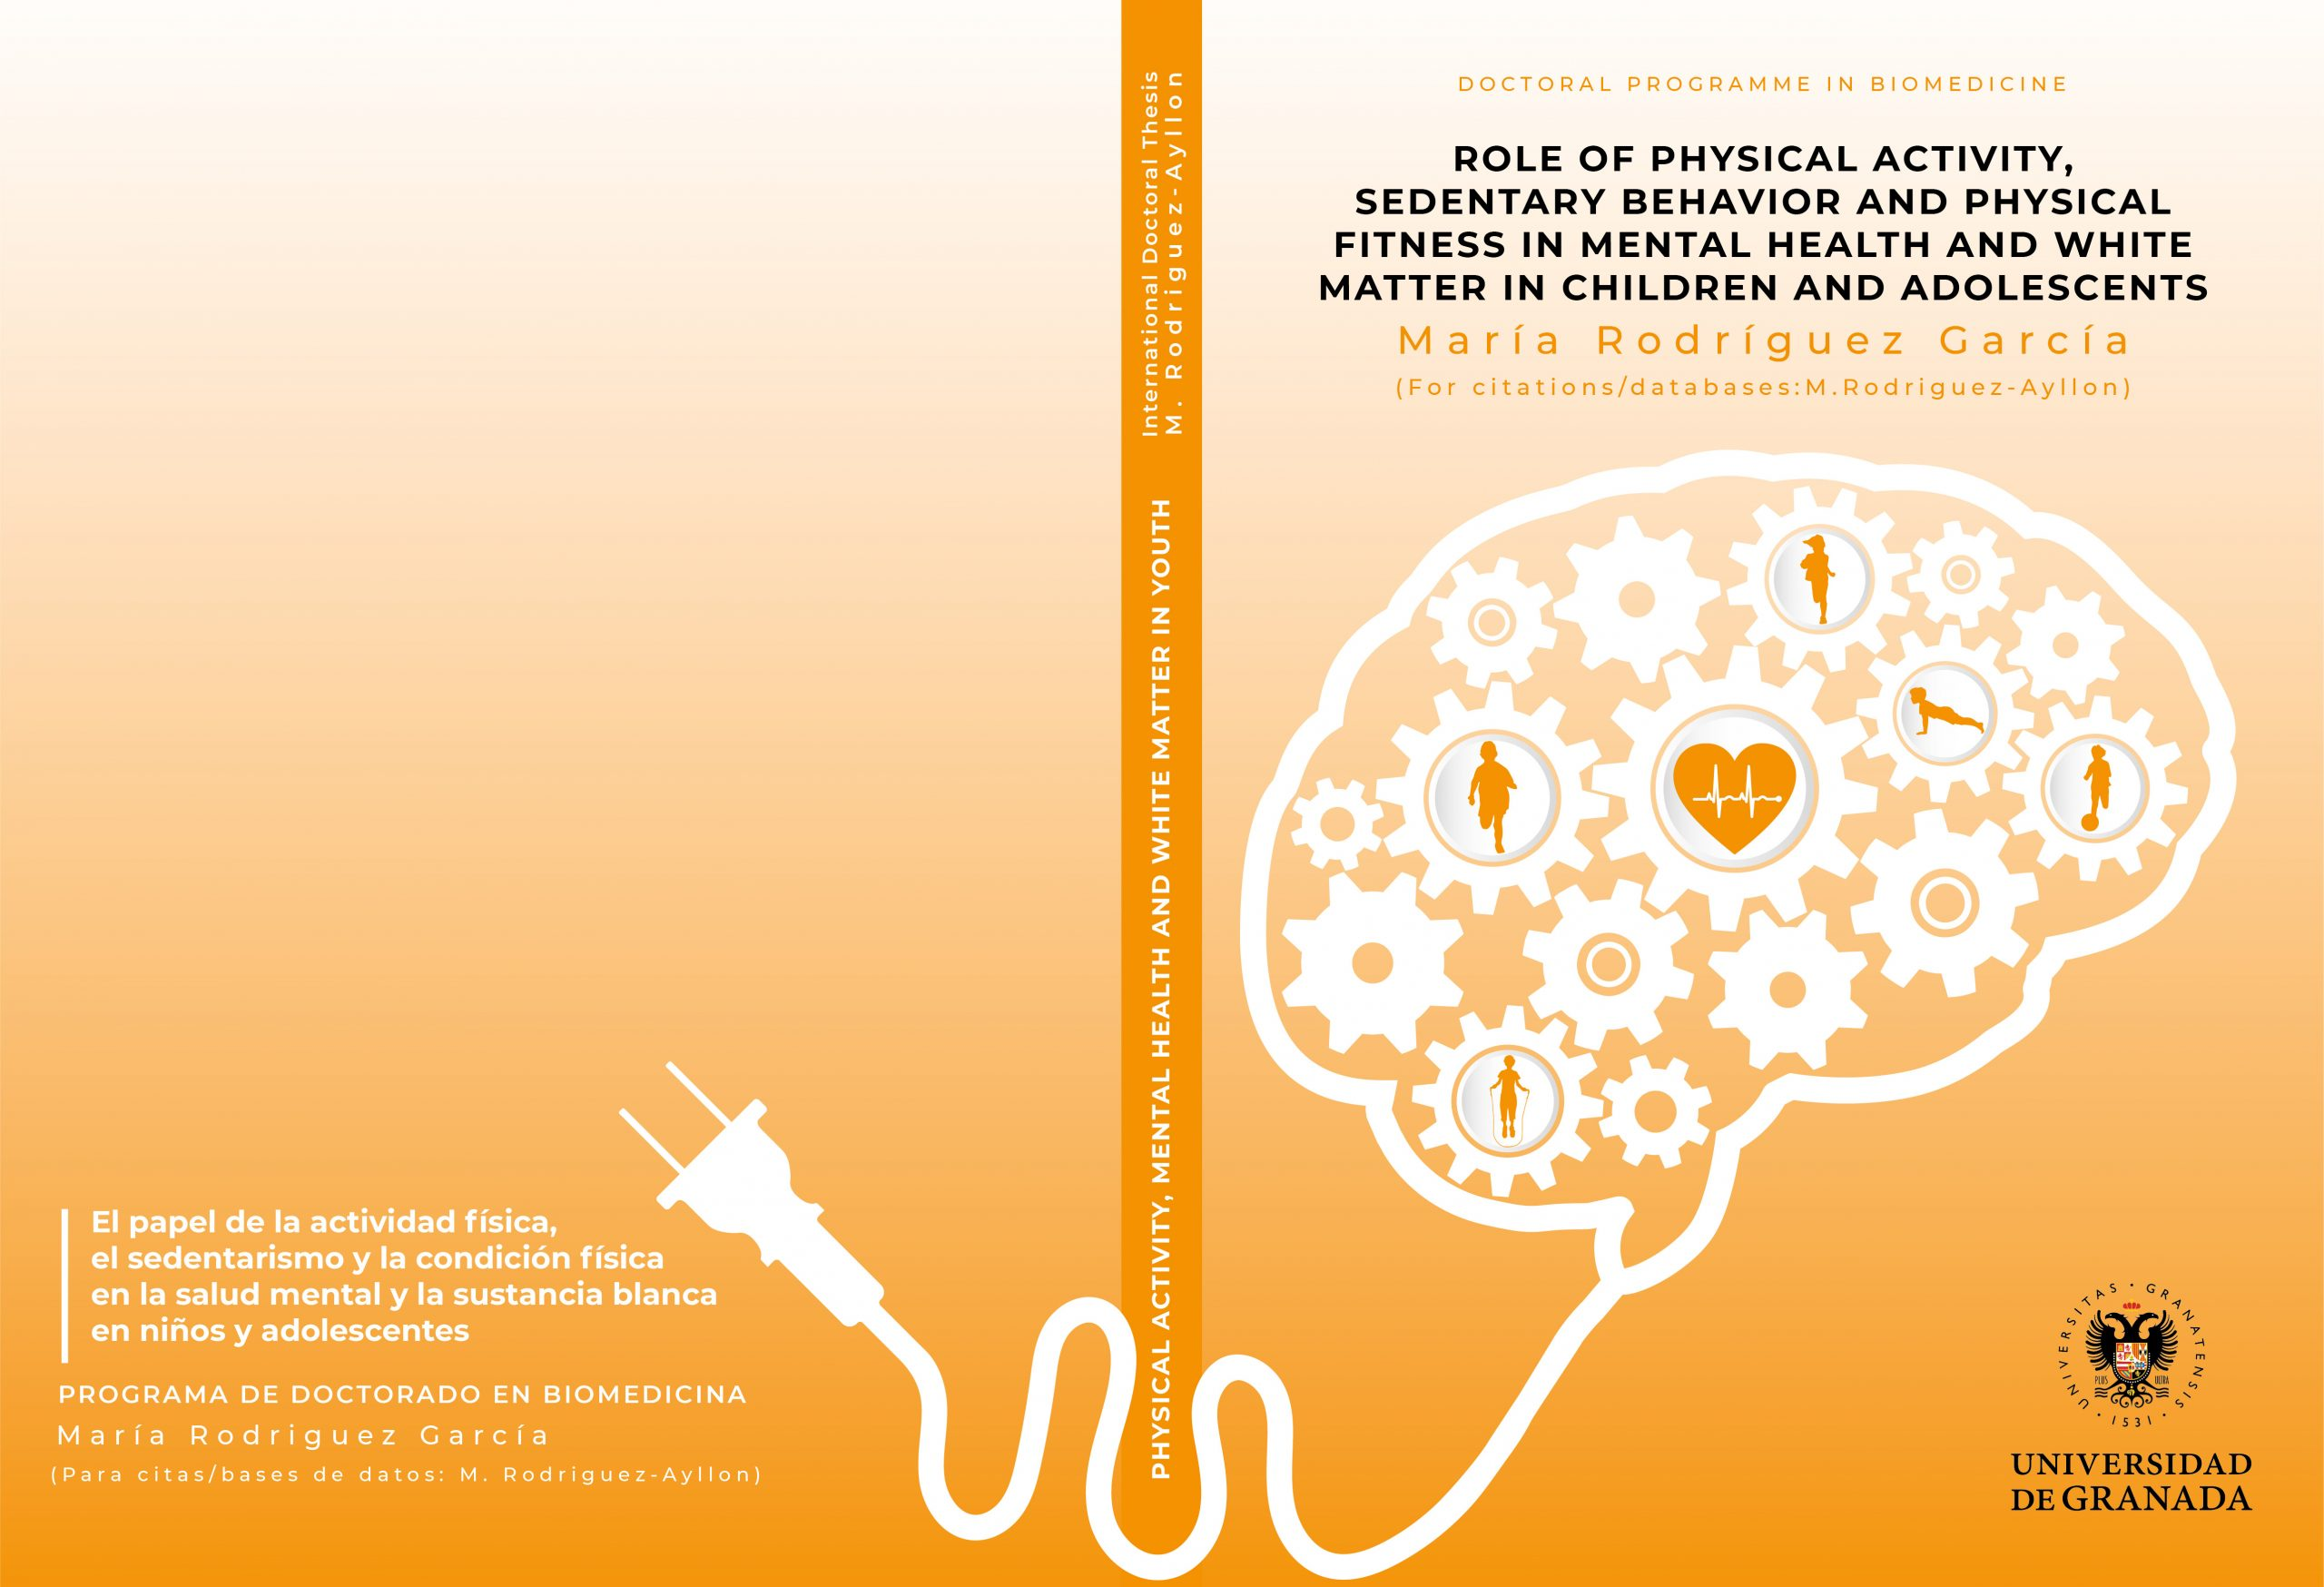 Role of physical activity, sedentary behavior, and physical fitness in mental health and white matter in children and adolescents.